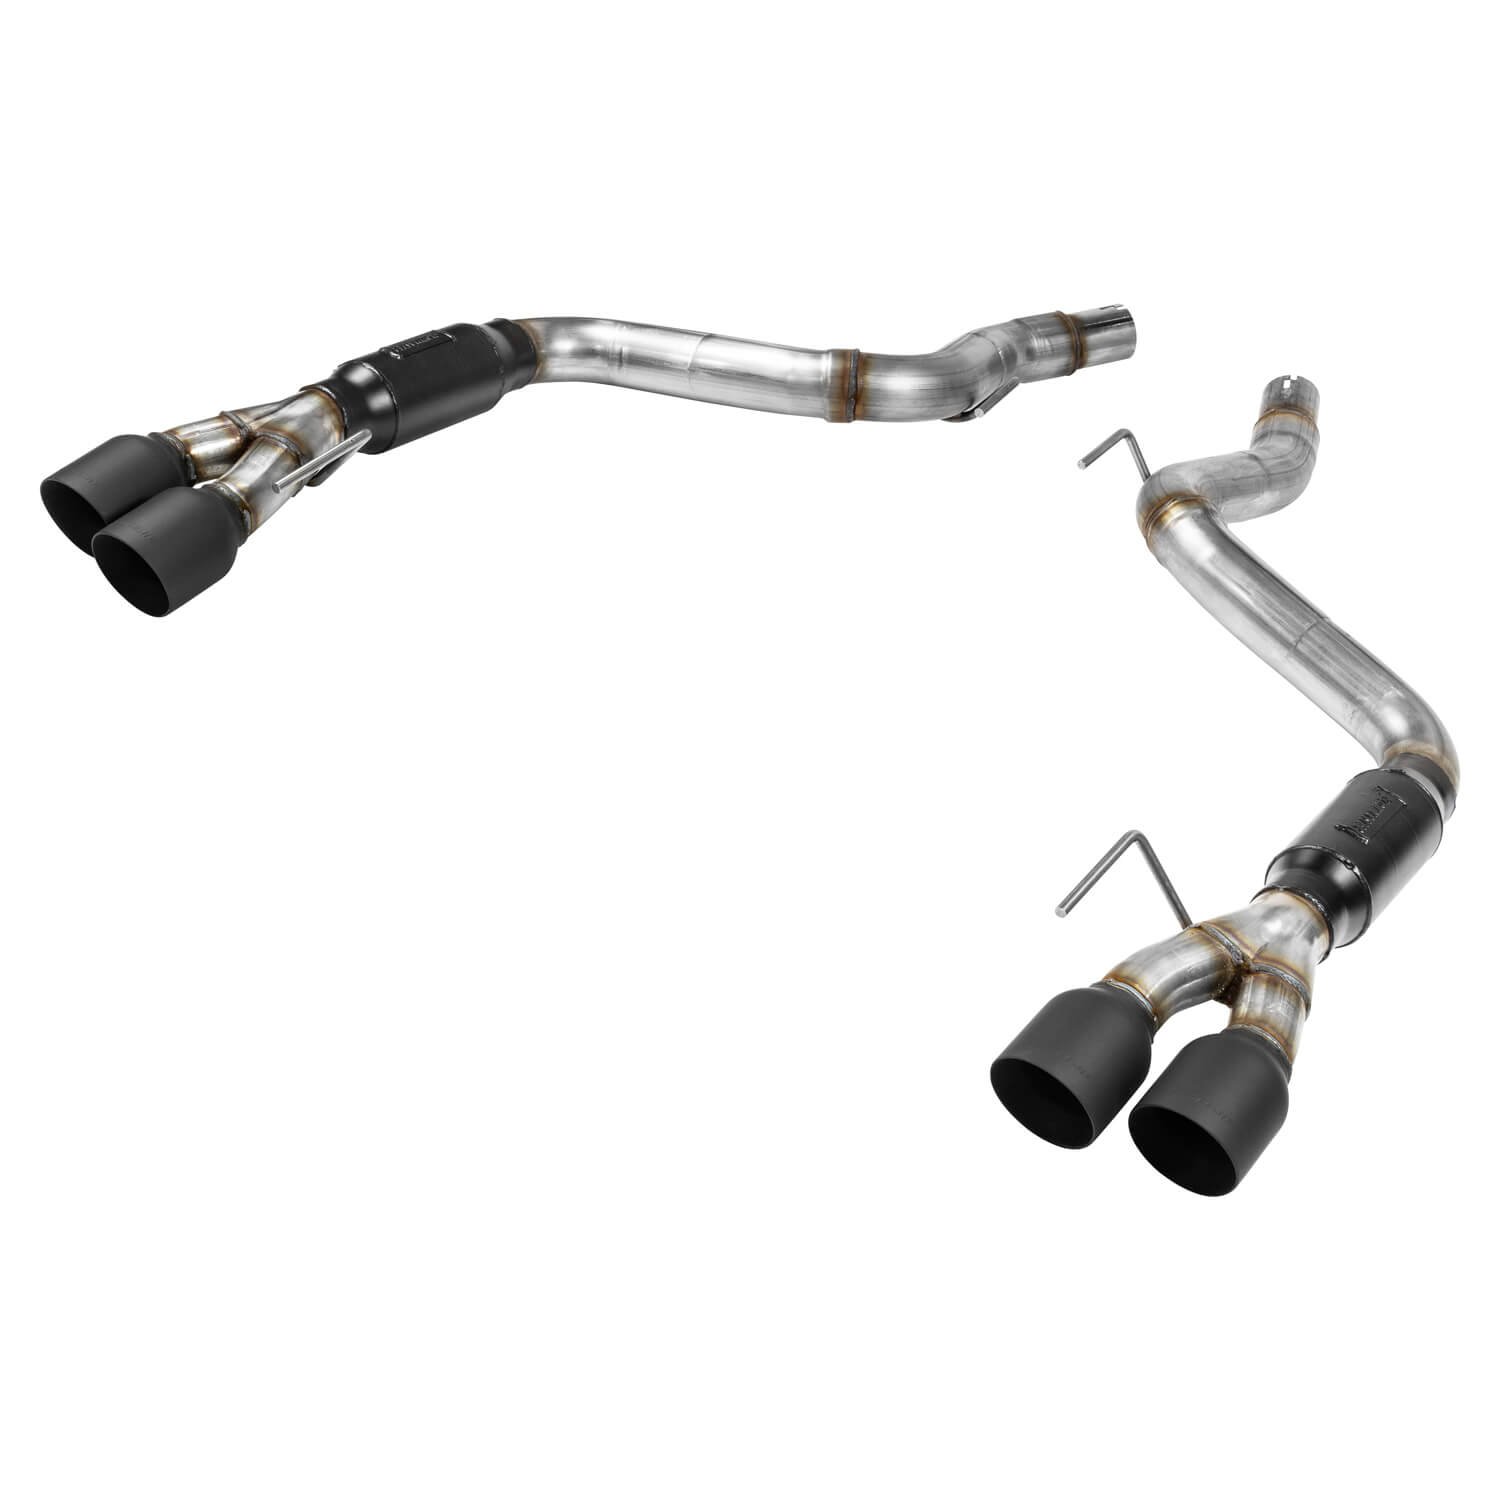 2018+ Ford Mustang GT 5.0L V8 Flowmaster Outlaw Axleback Exhaust System w/Black Tips